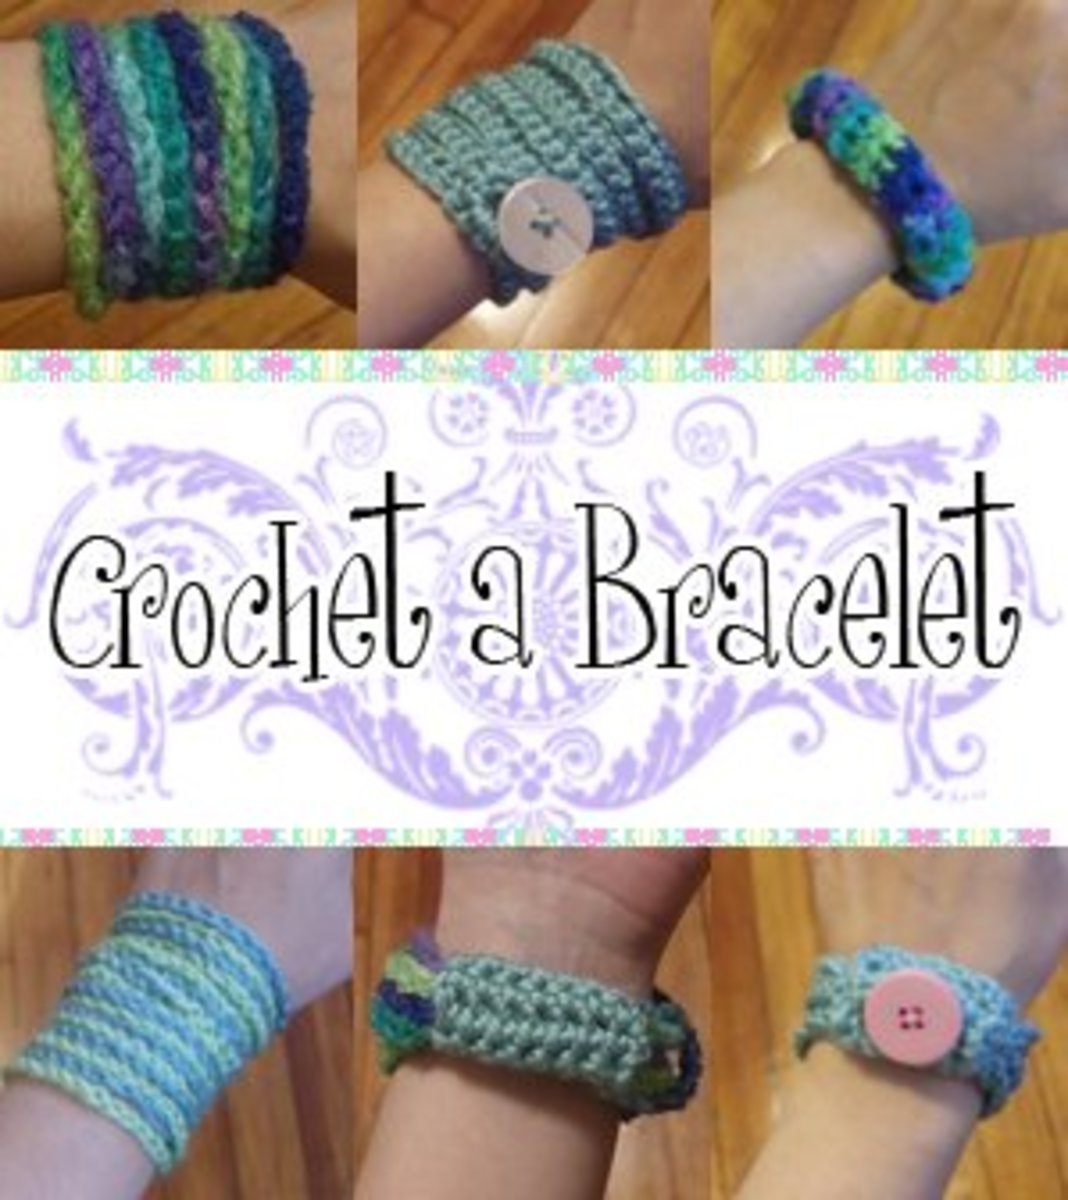 How to Crochet Bracelets